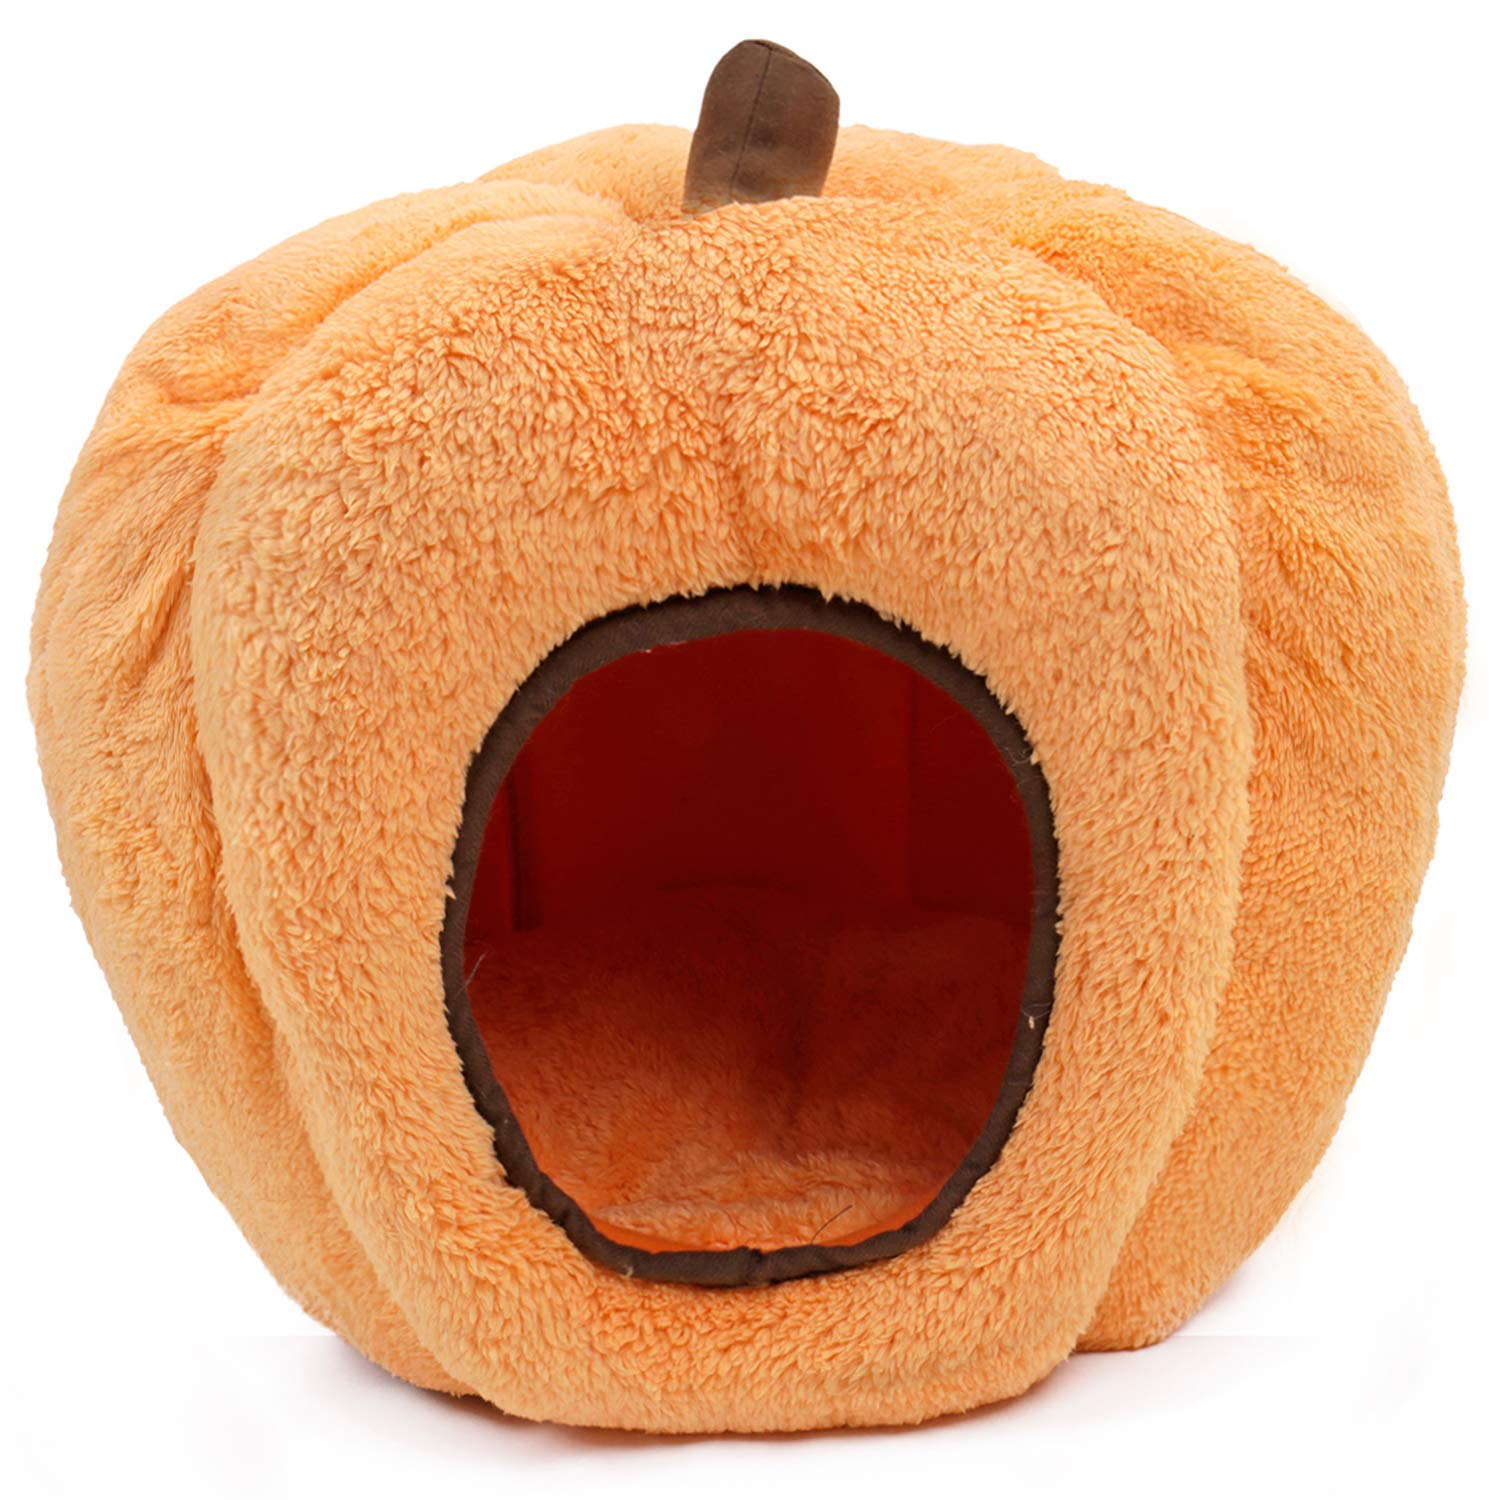 PAWZ Road Halloween Cozy Cat Bed, Puppy Hut Kitty Cave Pumpkin-Shaped Kennel, Non-Slip and Durable for Cats and Small Dogs by PAWZ Road